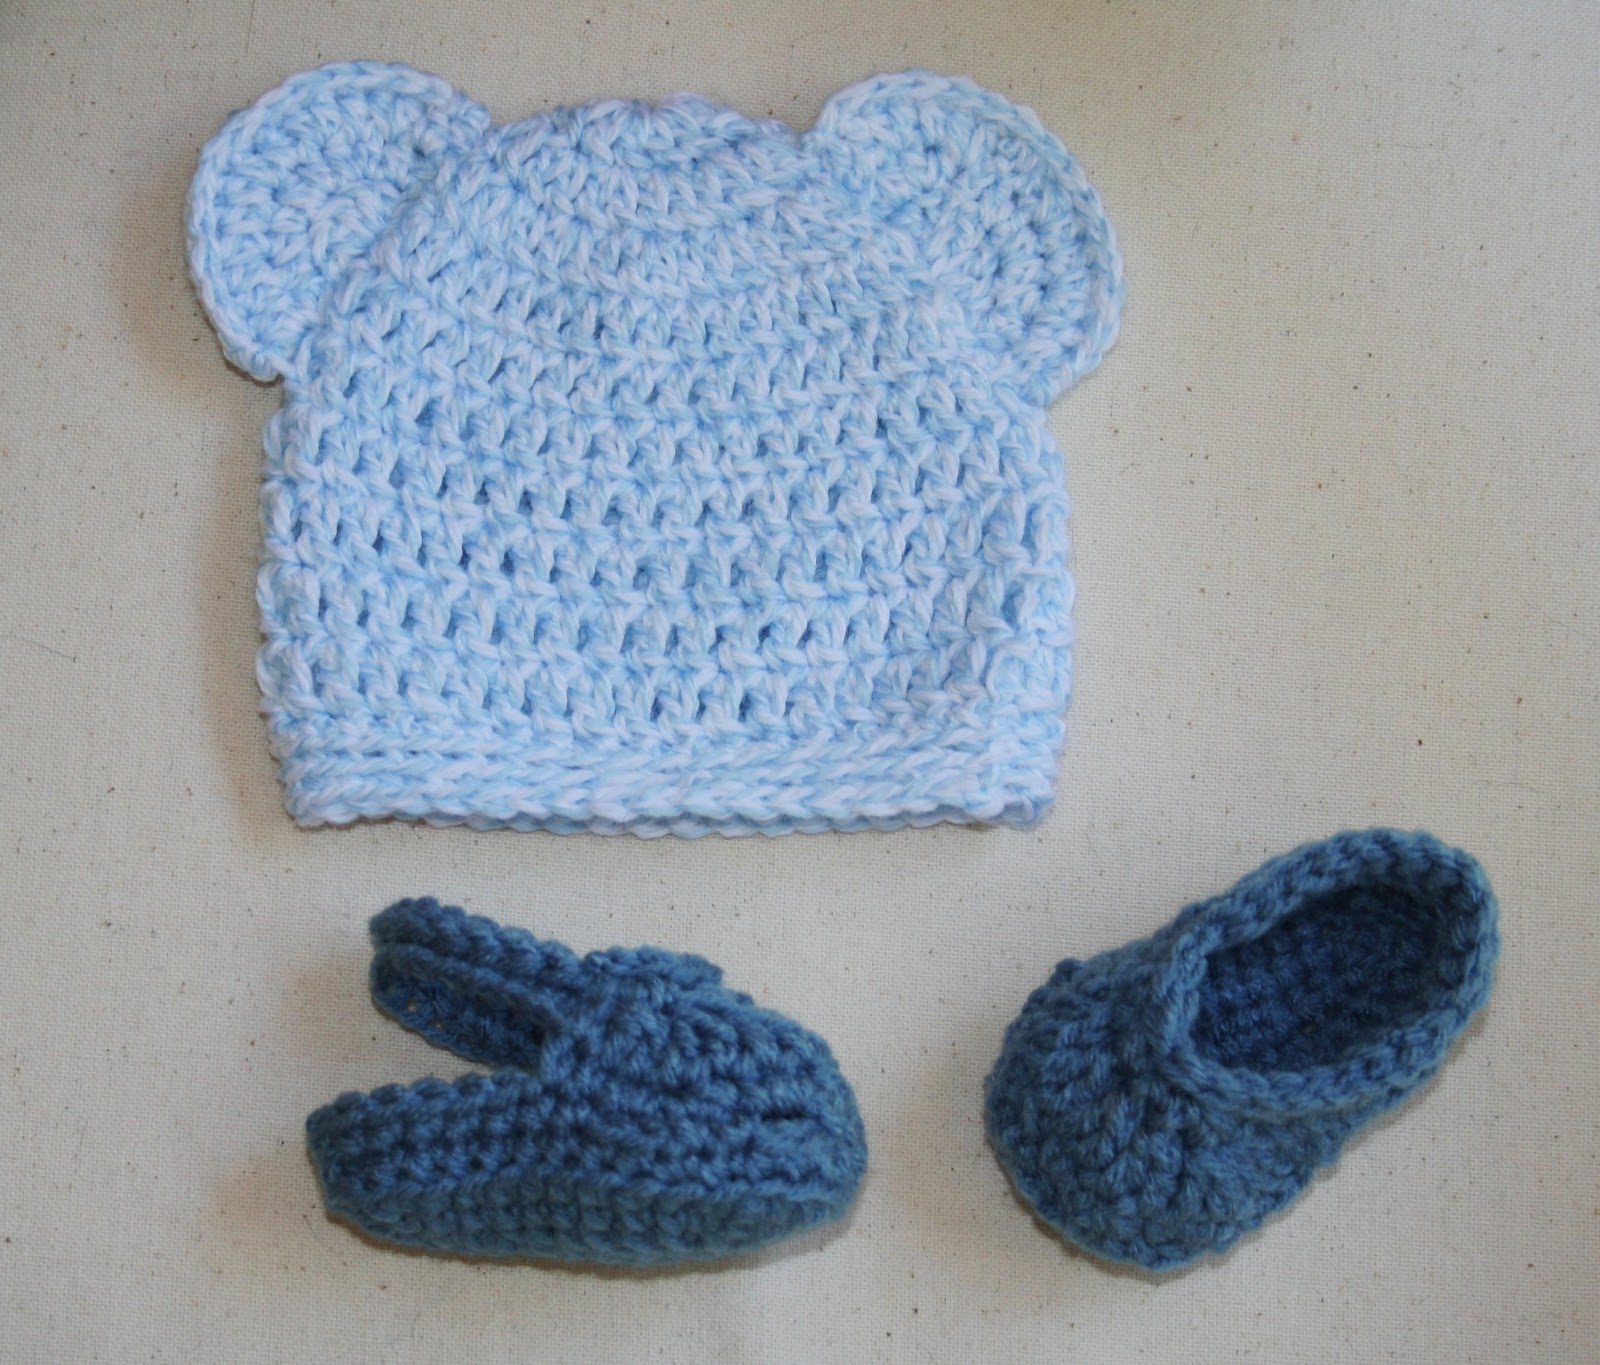 Tampa Bay Crochet: Crochet Baby Bear Hat & Crocs Sandals ...